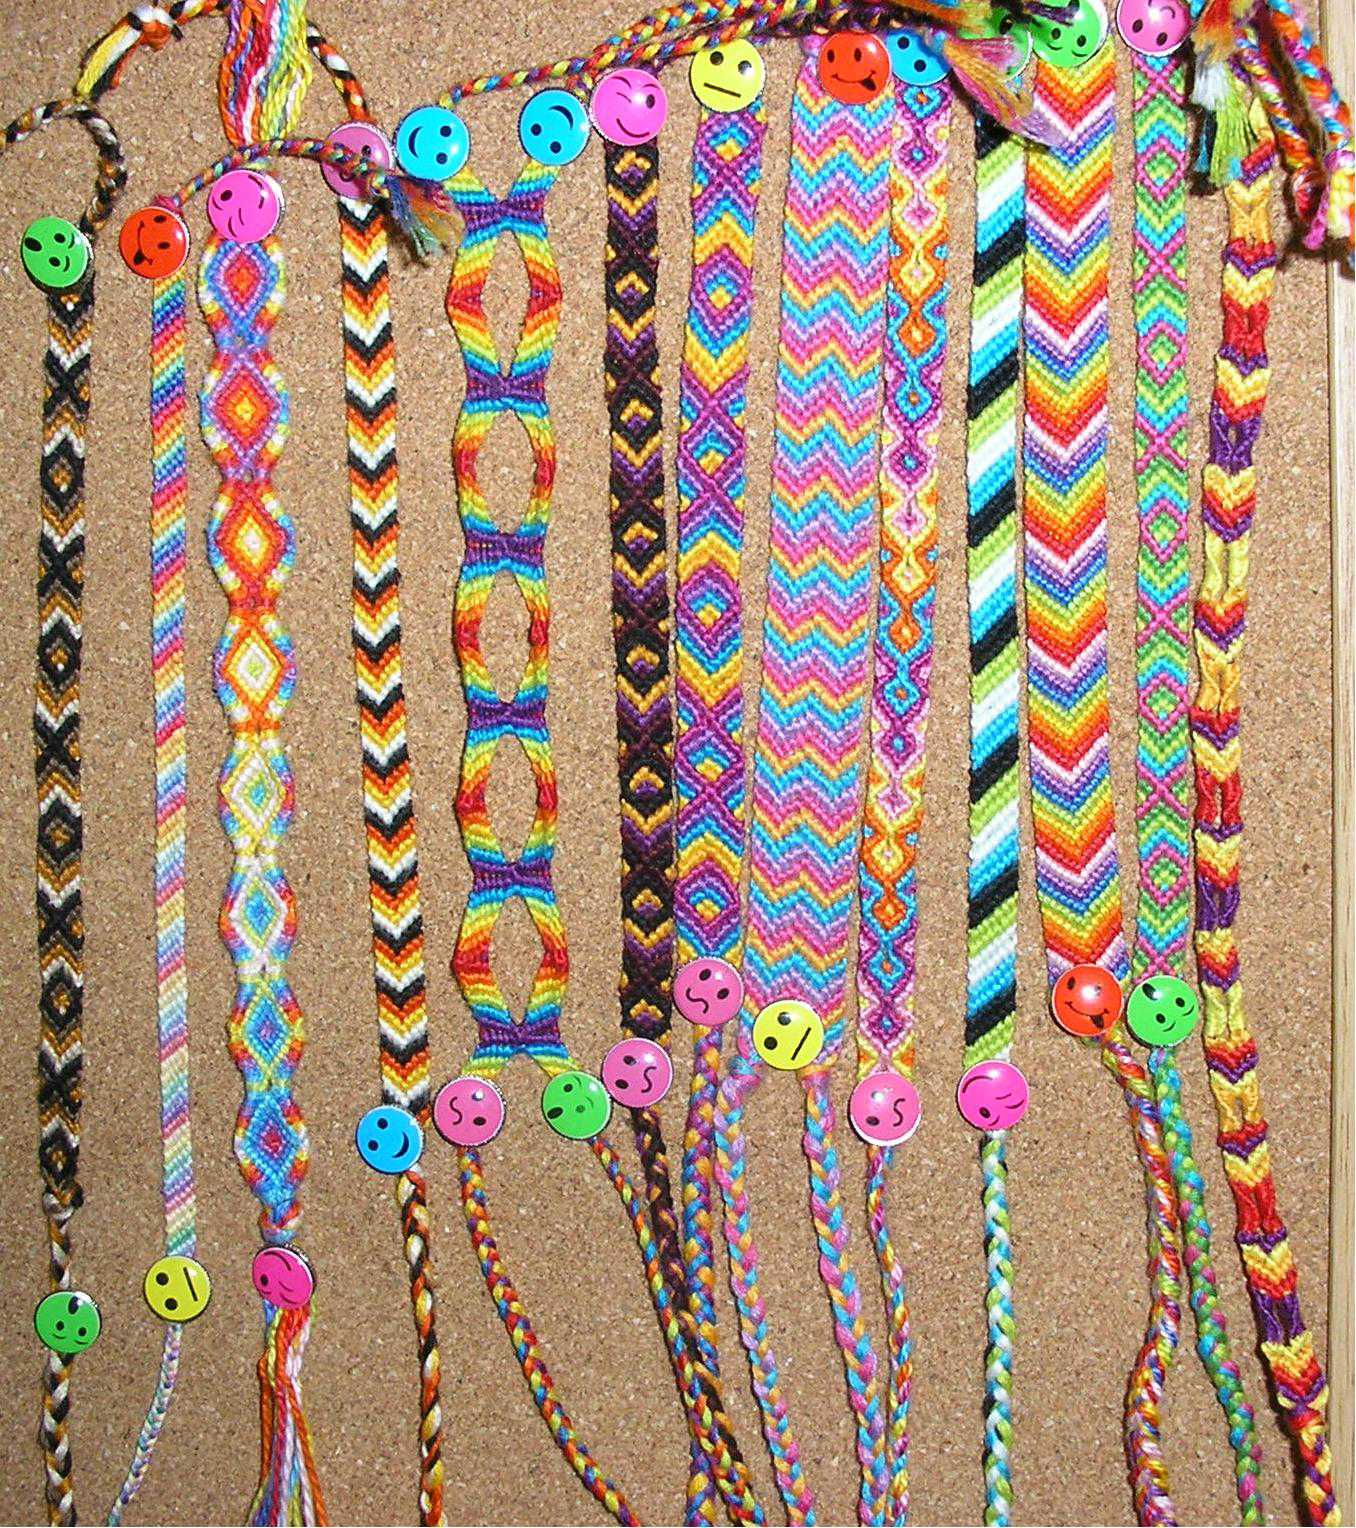 Bracelet Tool Galleries: Friendship Bracelet Name Patterns